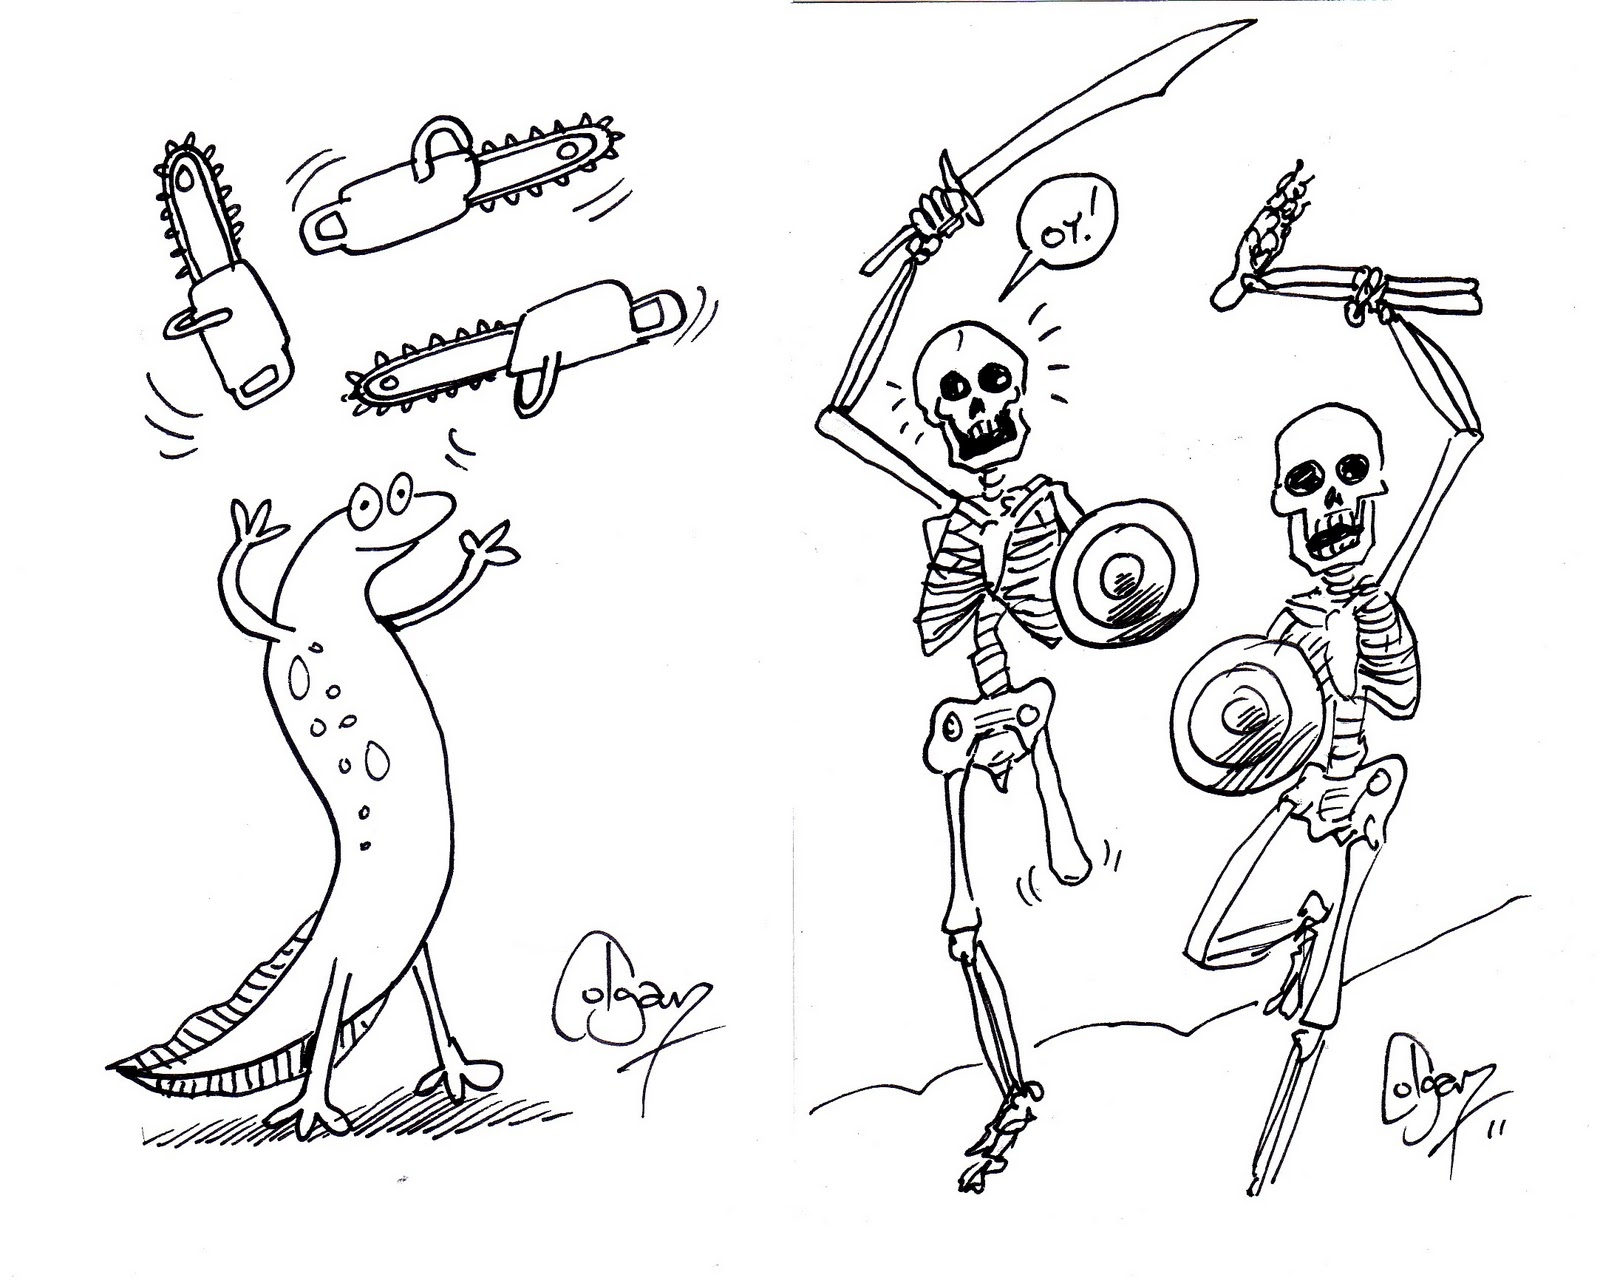 Newt skeleton - /animals/N/newt/Newt_skeleton.png.html